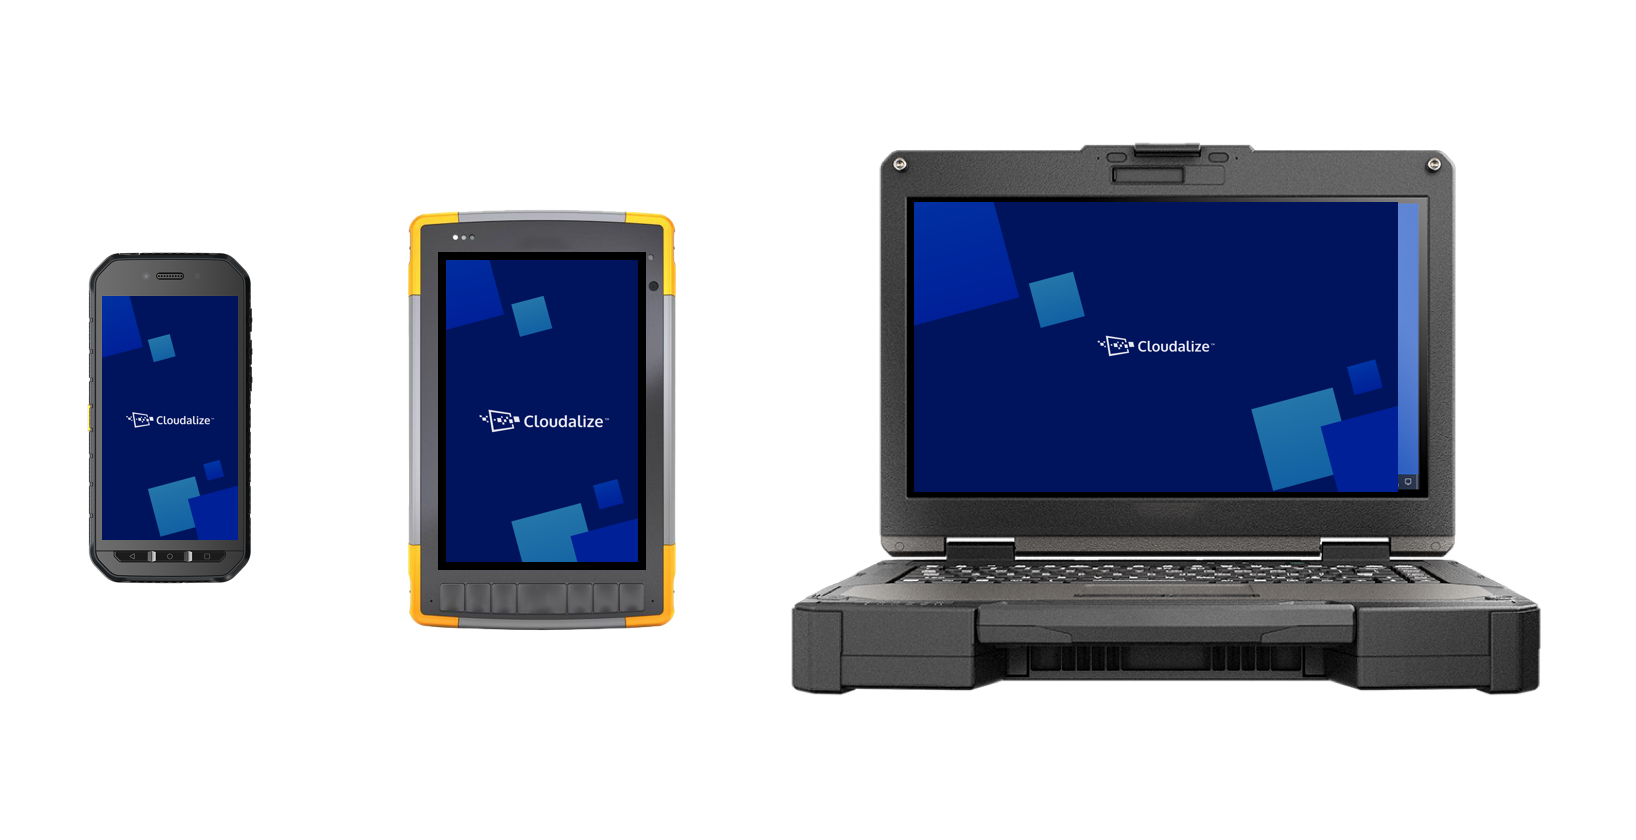 Cloudalize_gpu_powered_daas_cloud_platform_works_any_device_construction_ruggedized_ruggedized_smartphone_laptop_tablet_rugged_for_bim-in-field_on-site_off-site_CAD_CAE_BIM